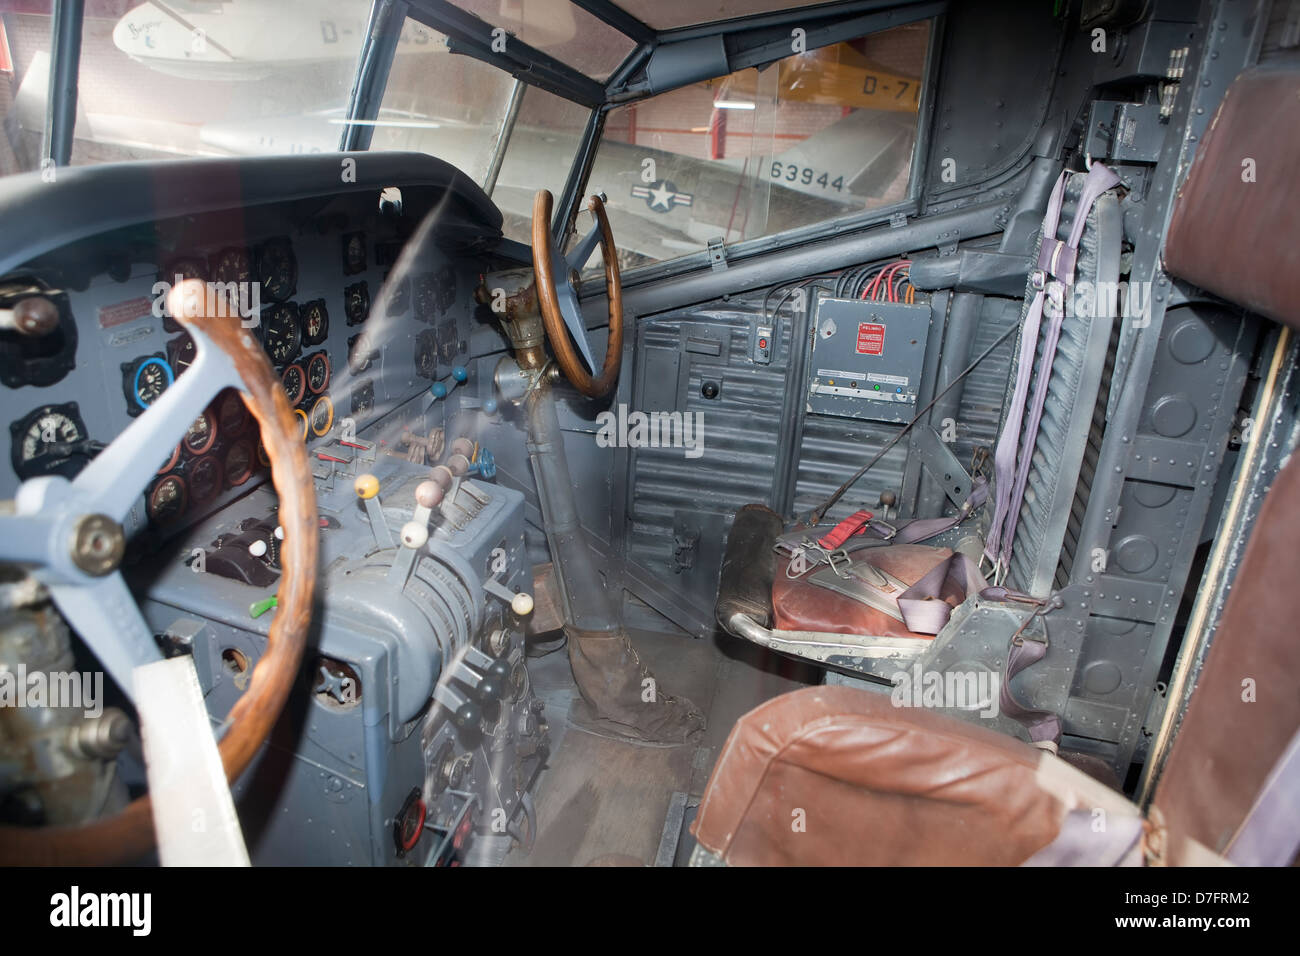 Cockpit of the passenger aircraft Junkers JU-52, Germany, Europe, Aircraft Collection Hermeskeil, Germany, Europe - Stock Image